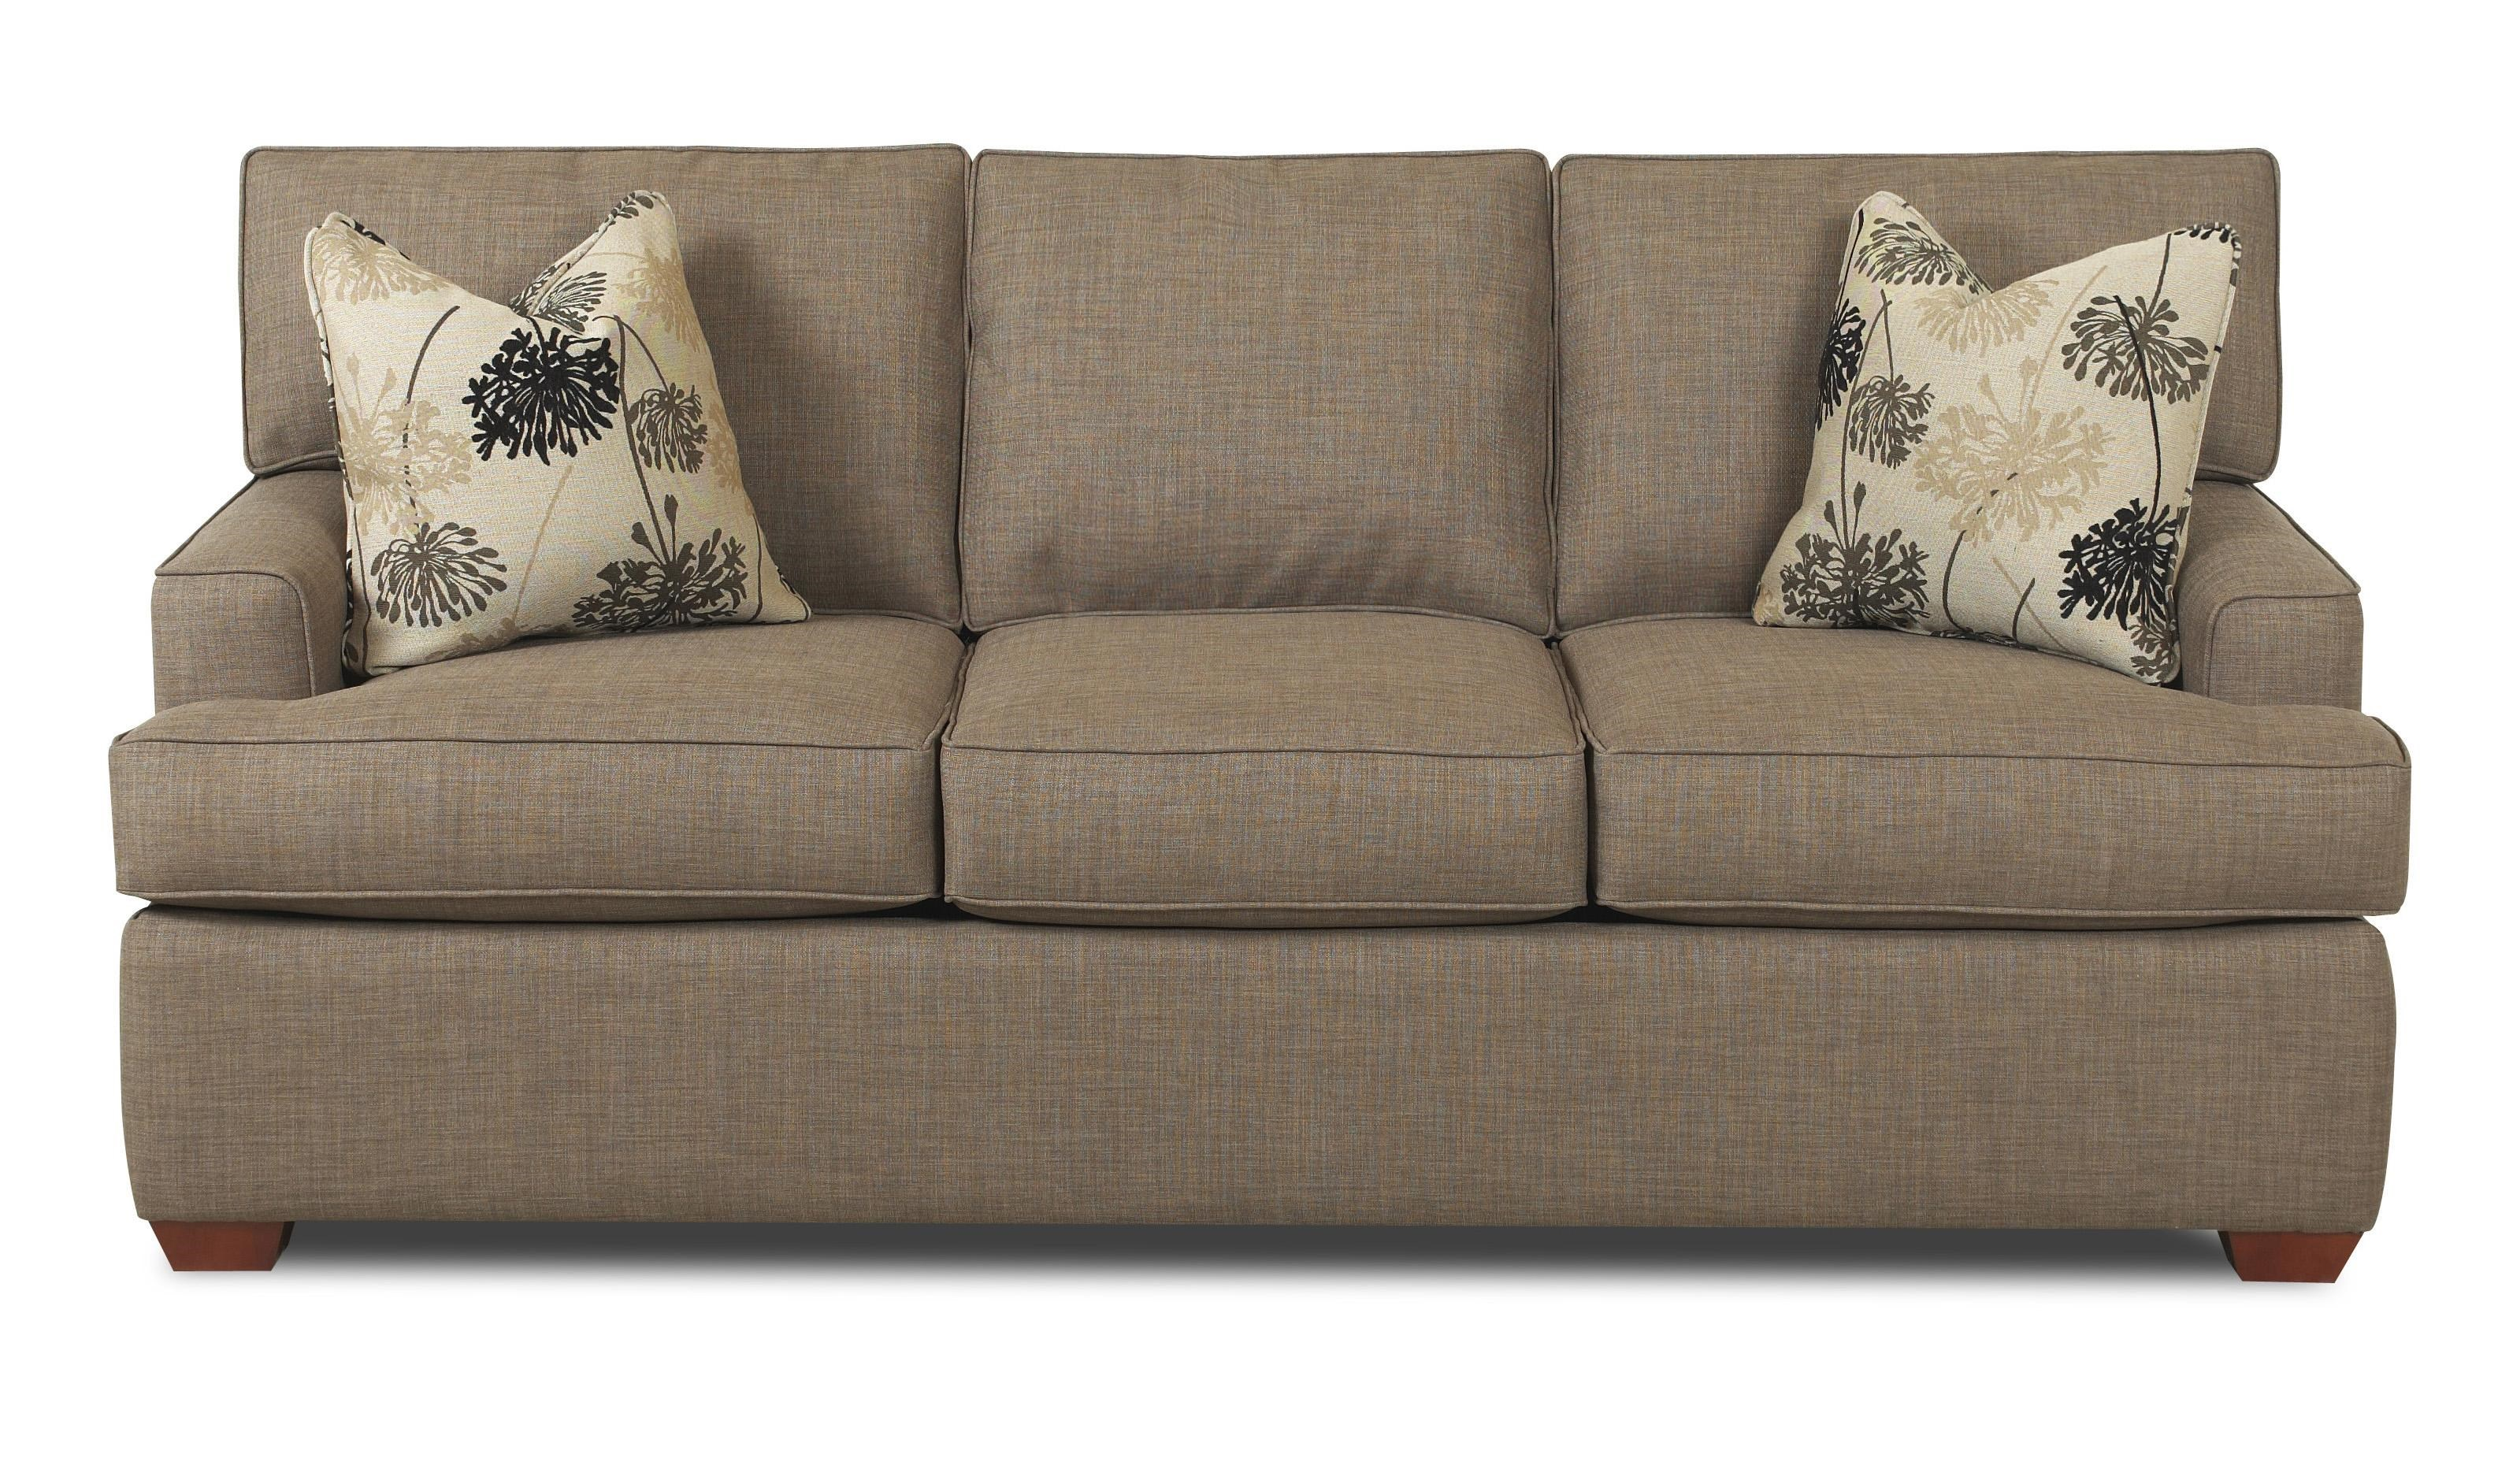 Sofa with Low Profile Track Arms